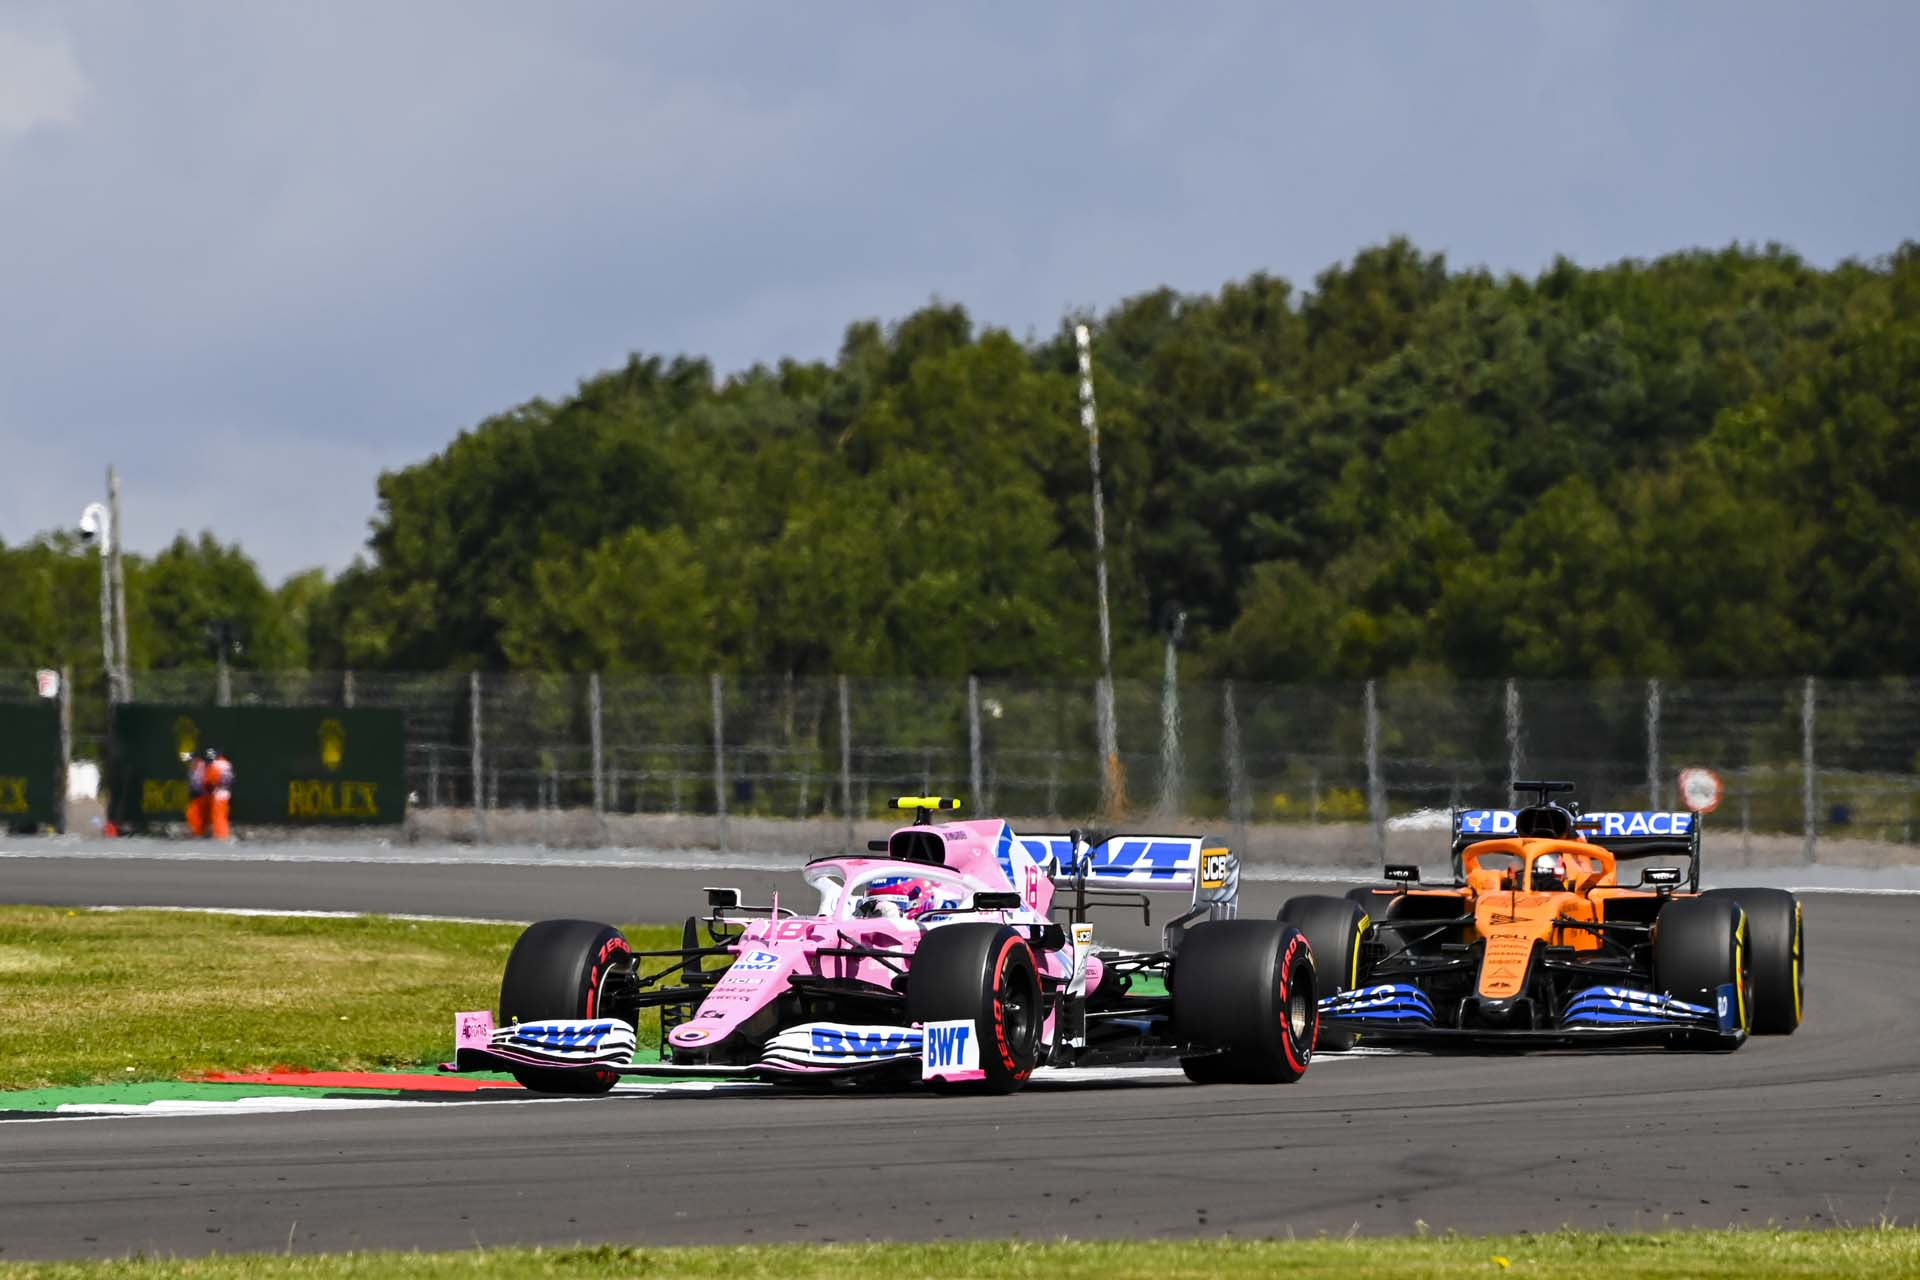 Lance Stroll, Racing Point RP20, leads Carlos Sainz, McLaren MCL35